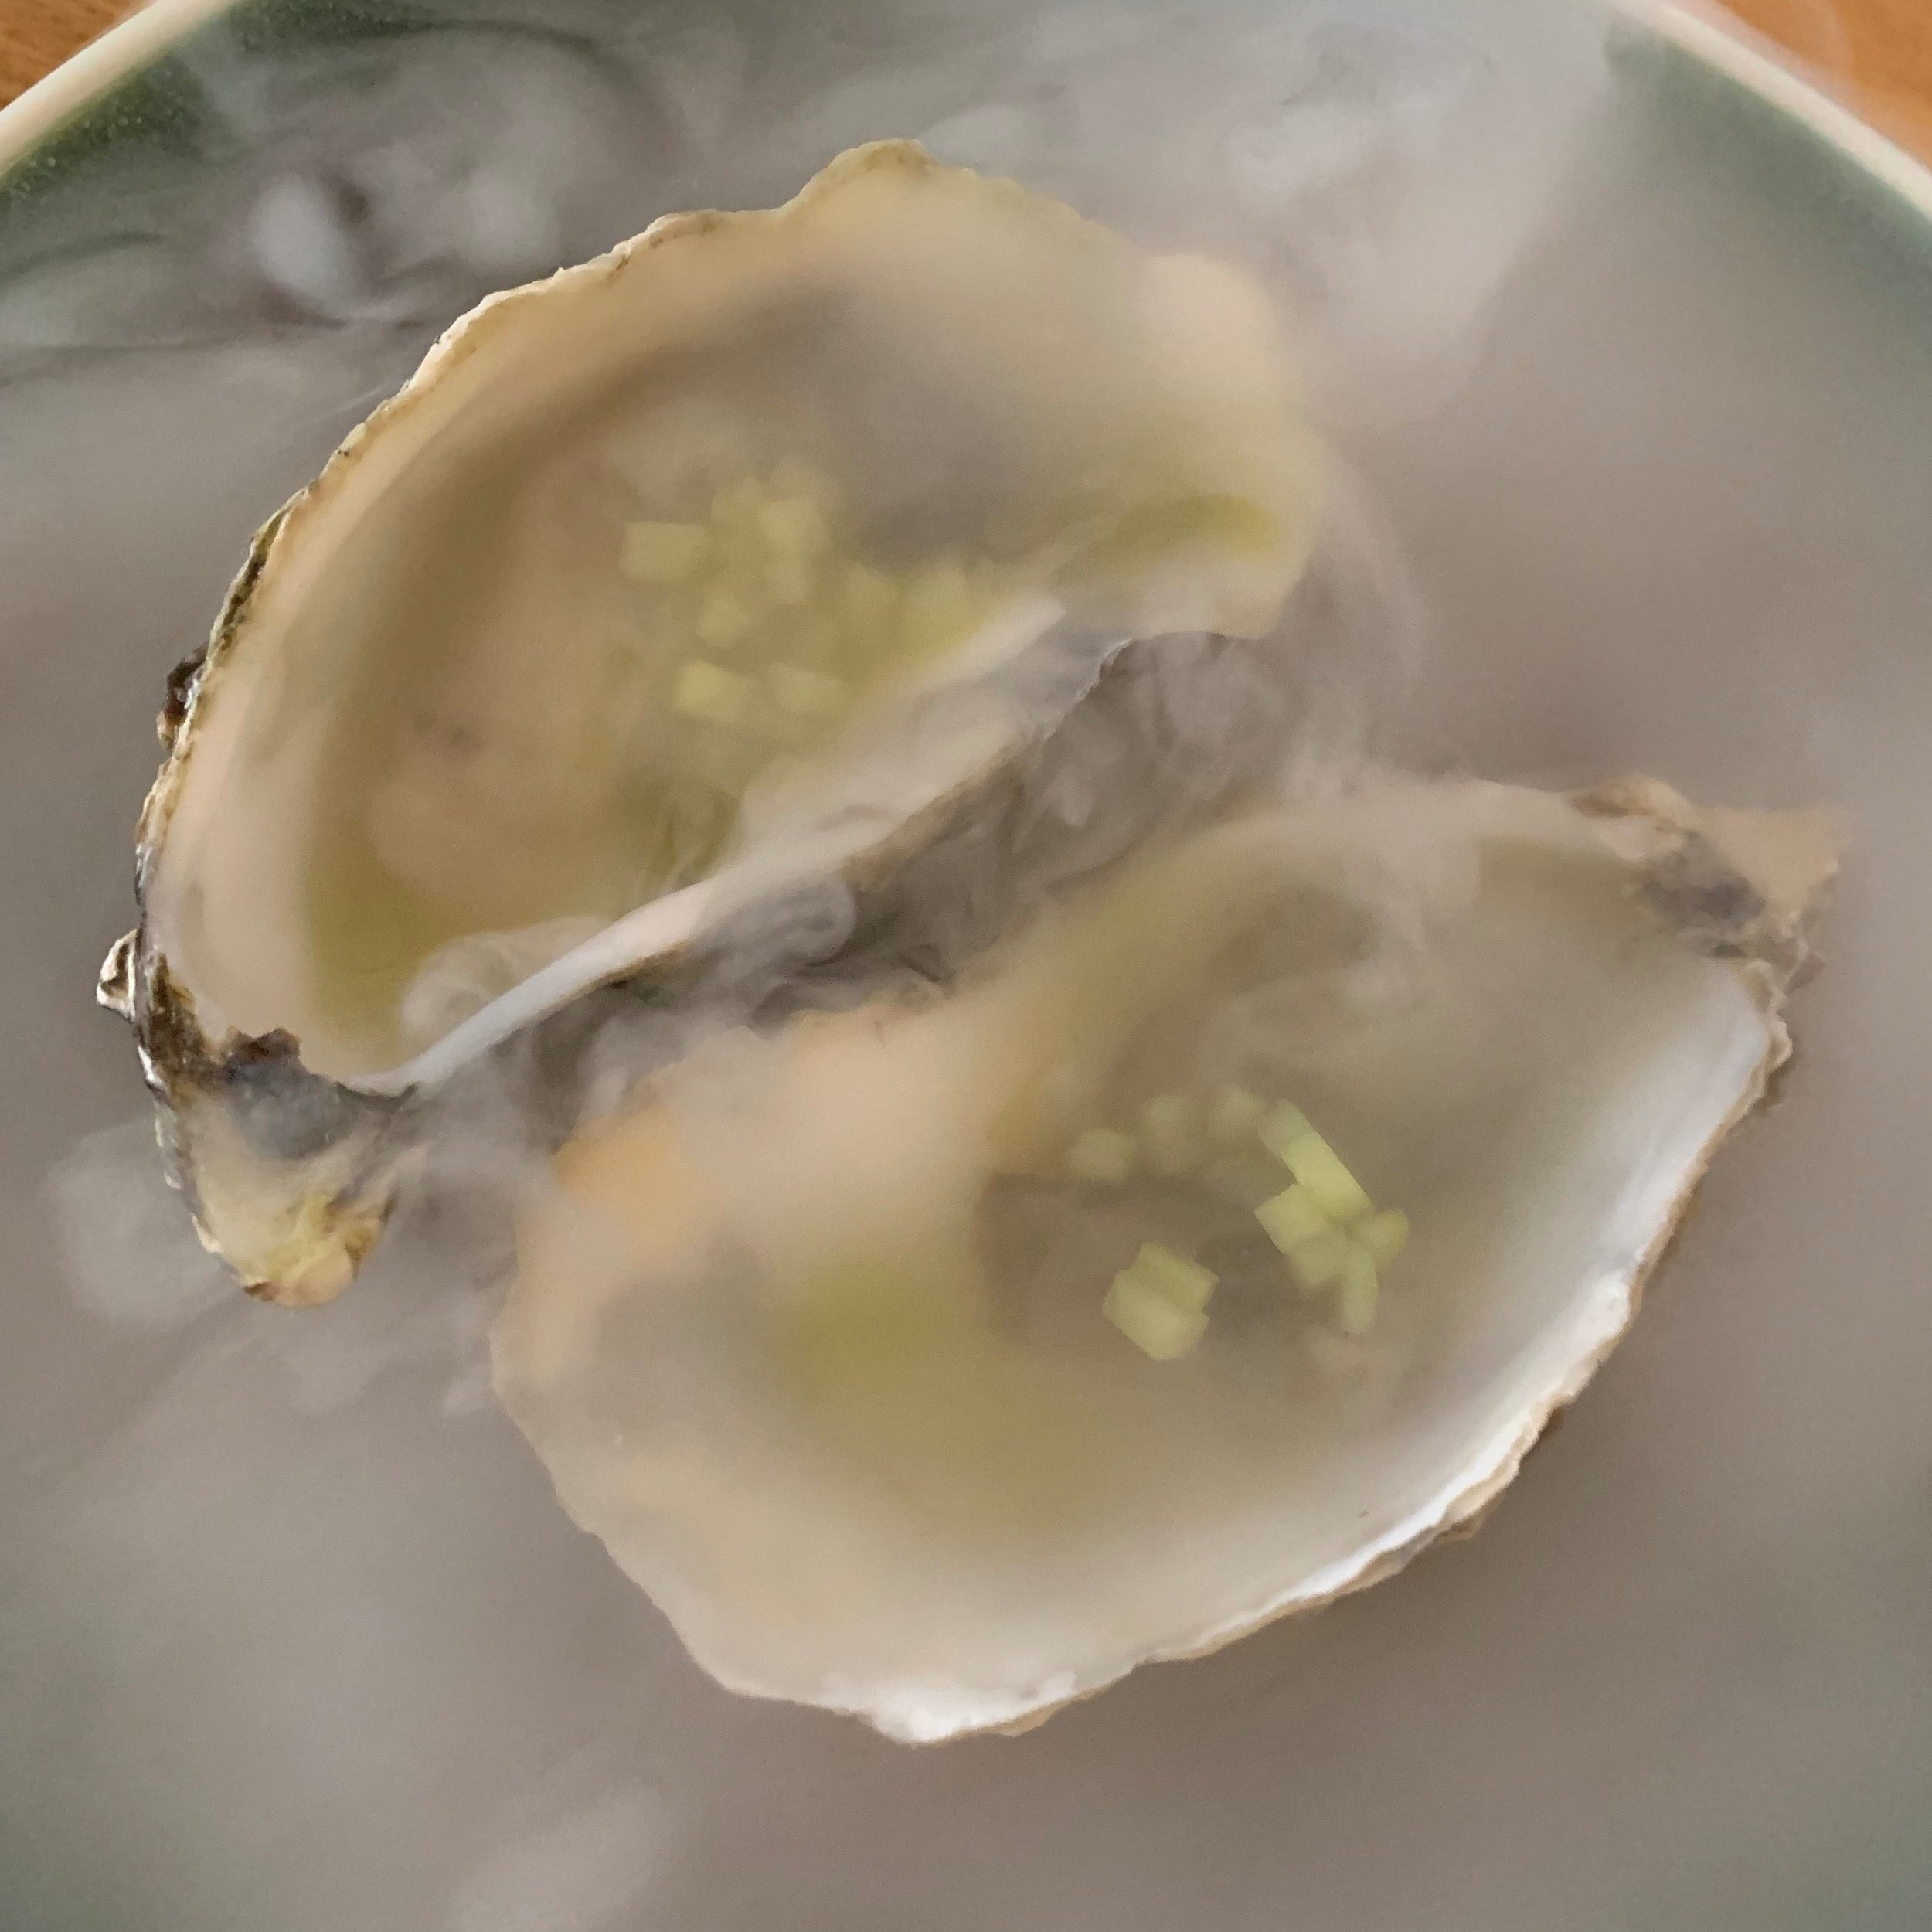 Oyster, jalapeño, & Cucumber - We knew we were at a special place when the oysters came out in dry ice. The jalapeño added a nice spicy kick to the briny oyster.